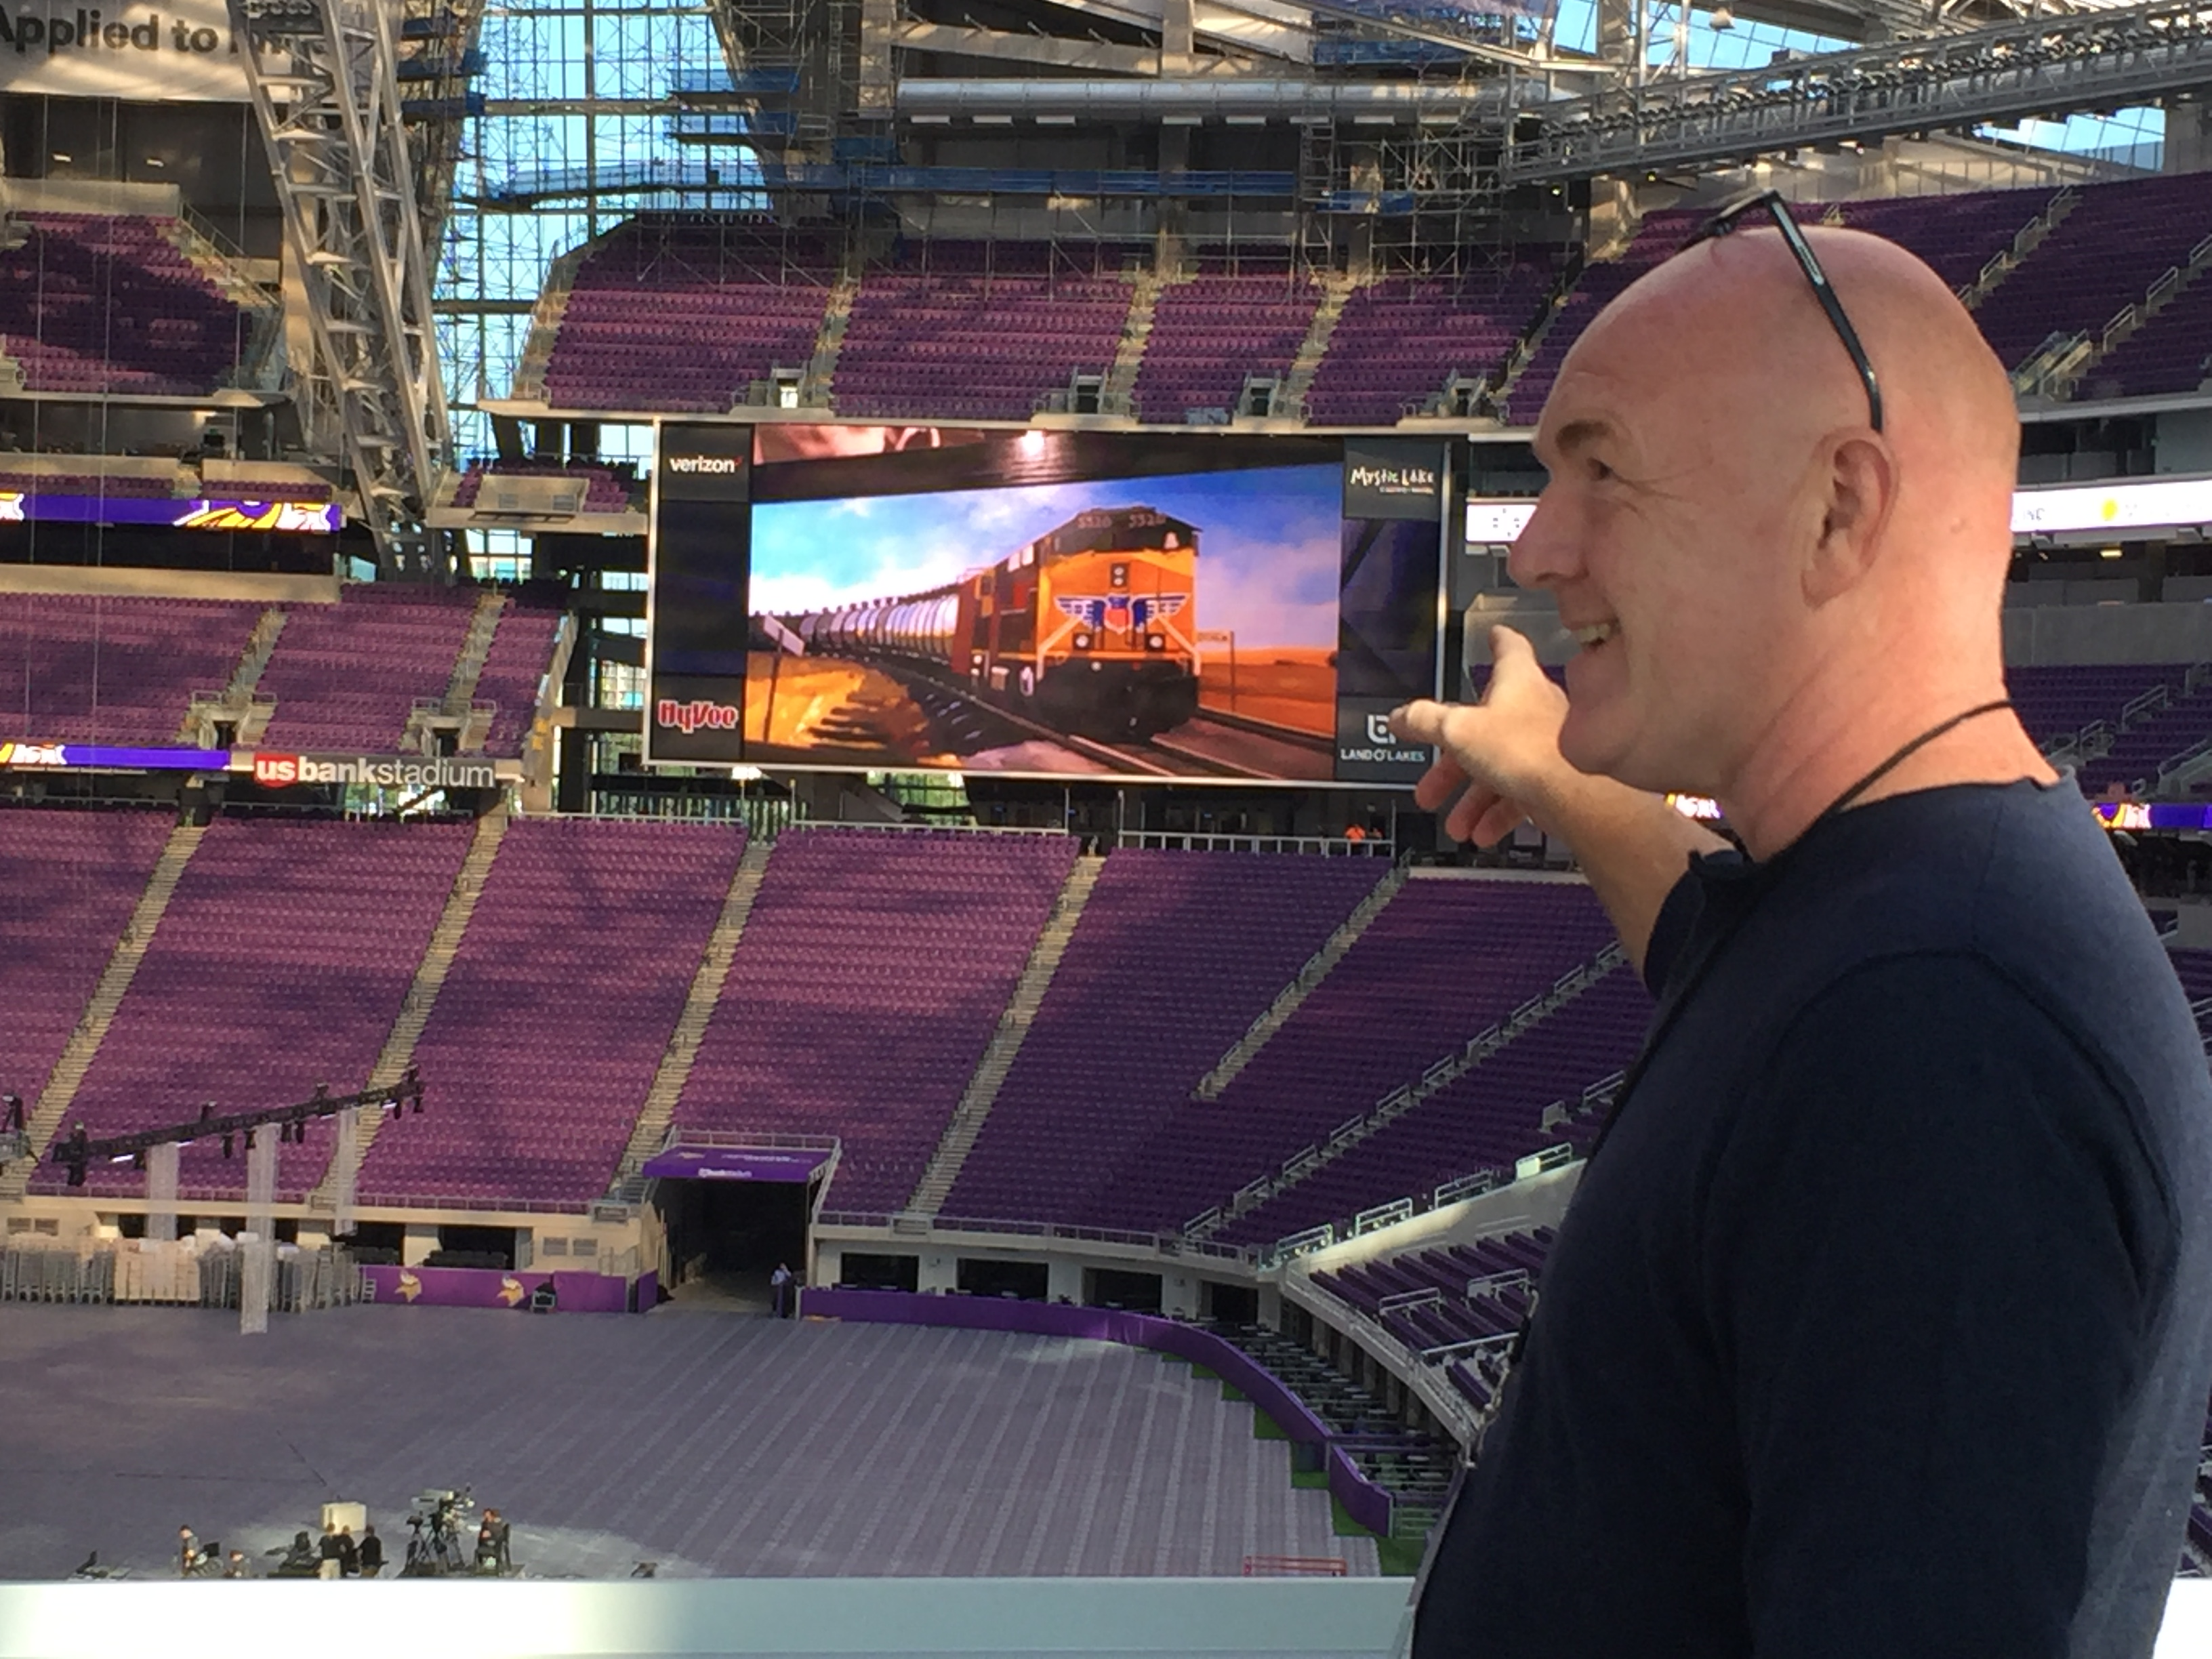 At the Vikings Stadium